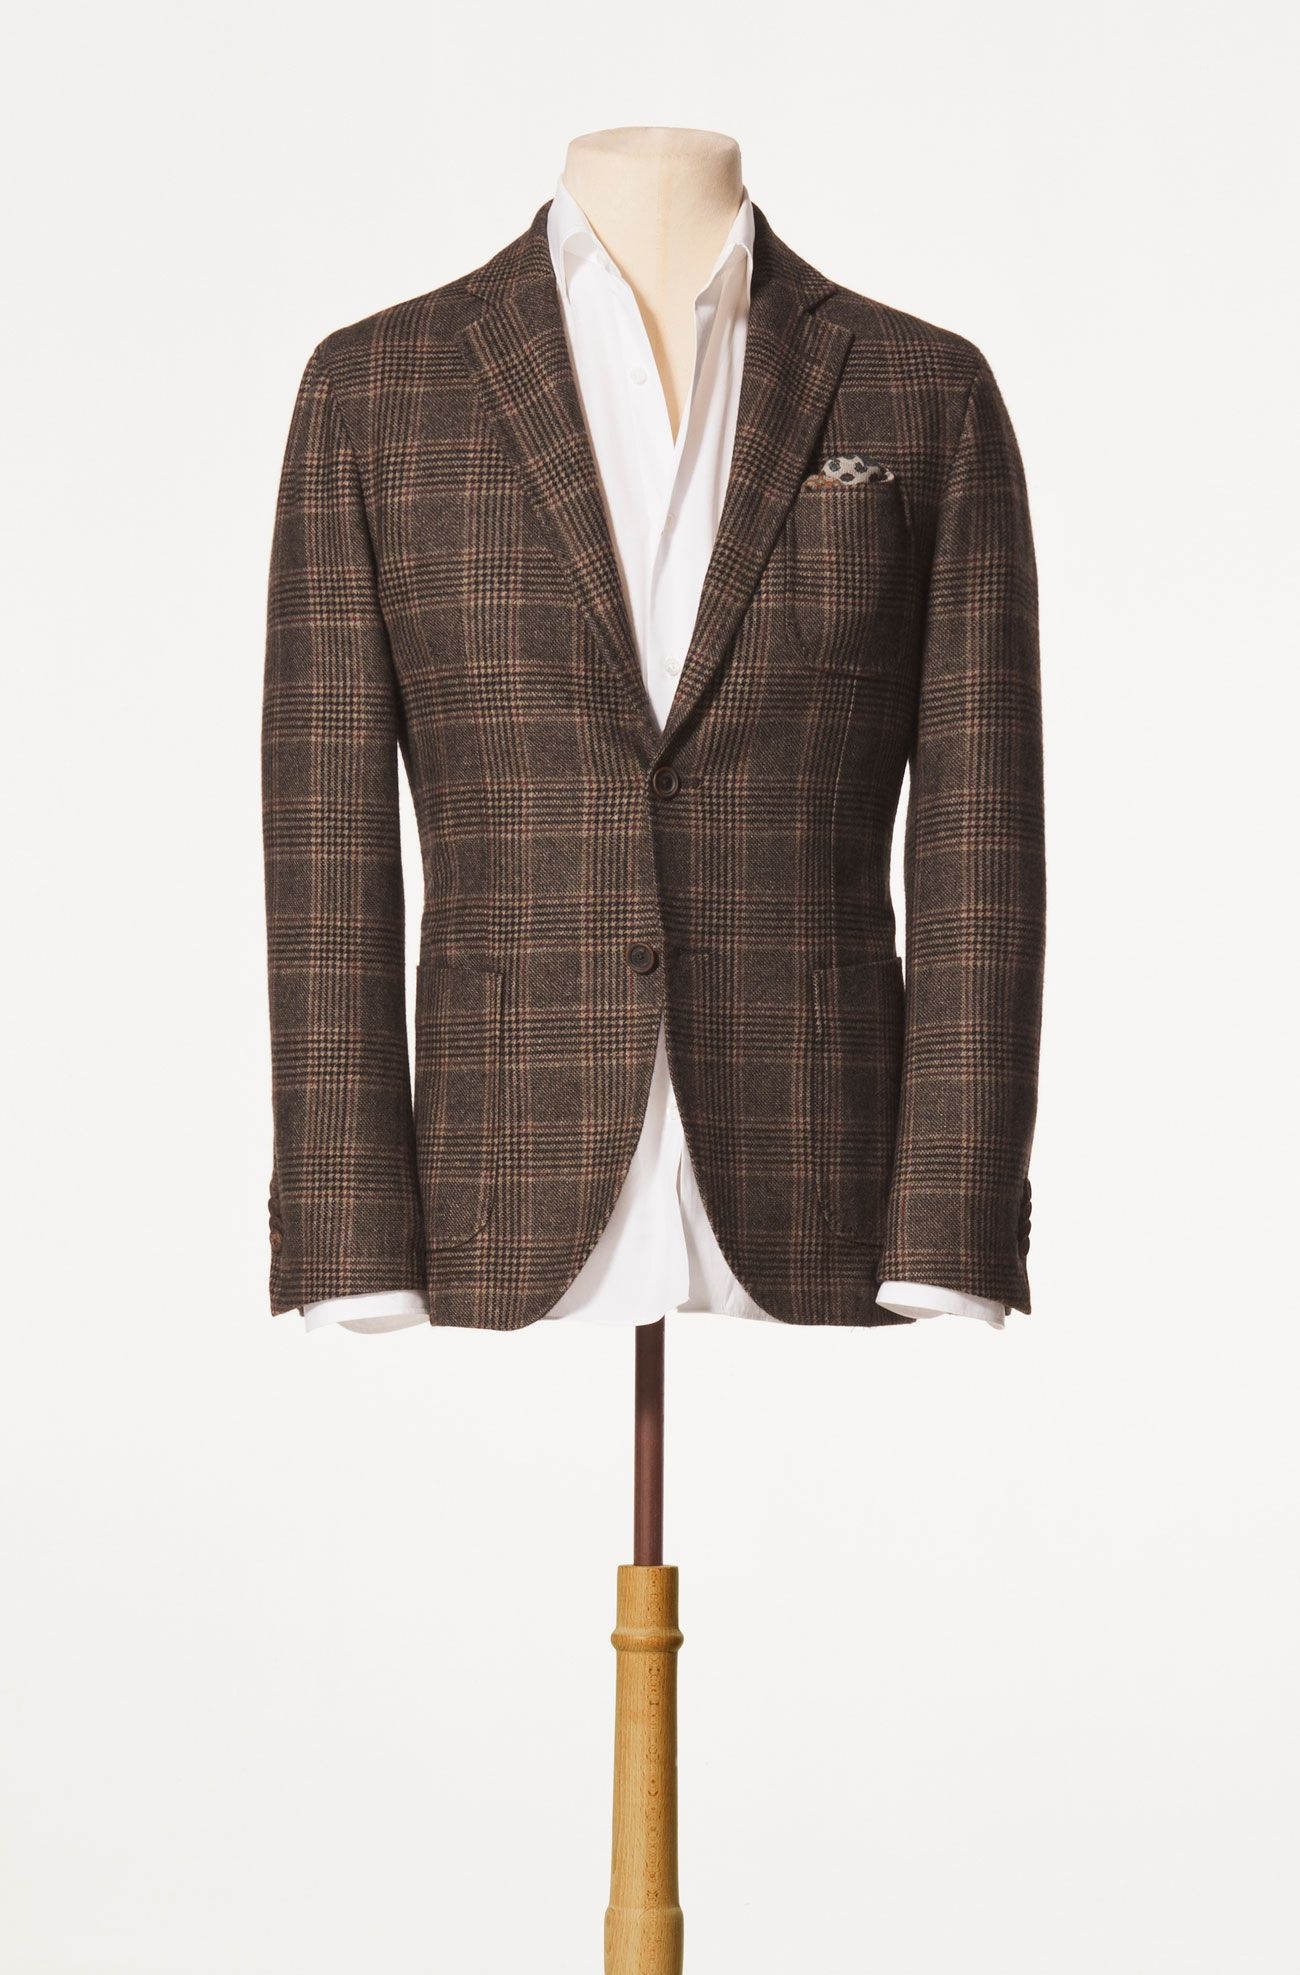 Men's Checked Blazers and Sports Coats Lookbook | Men's Style ...